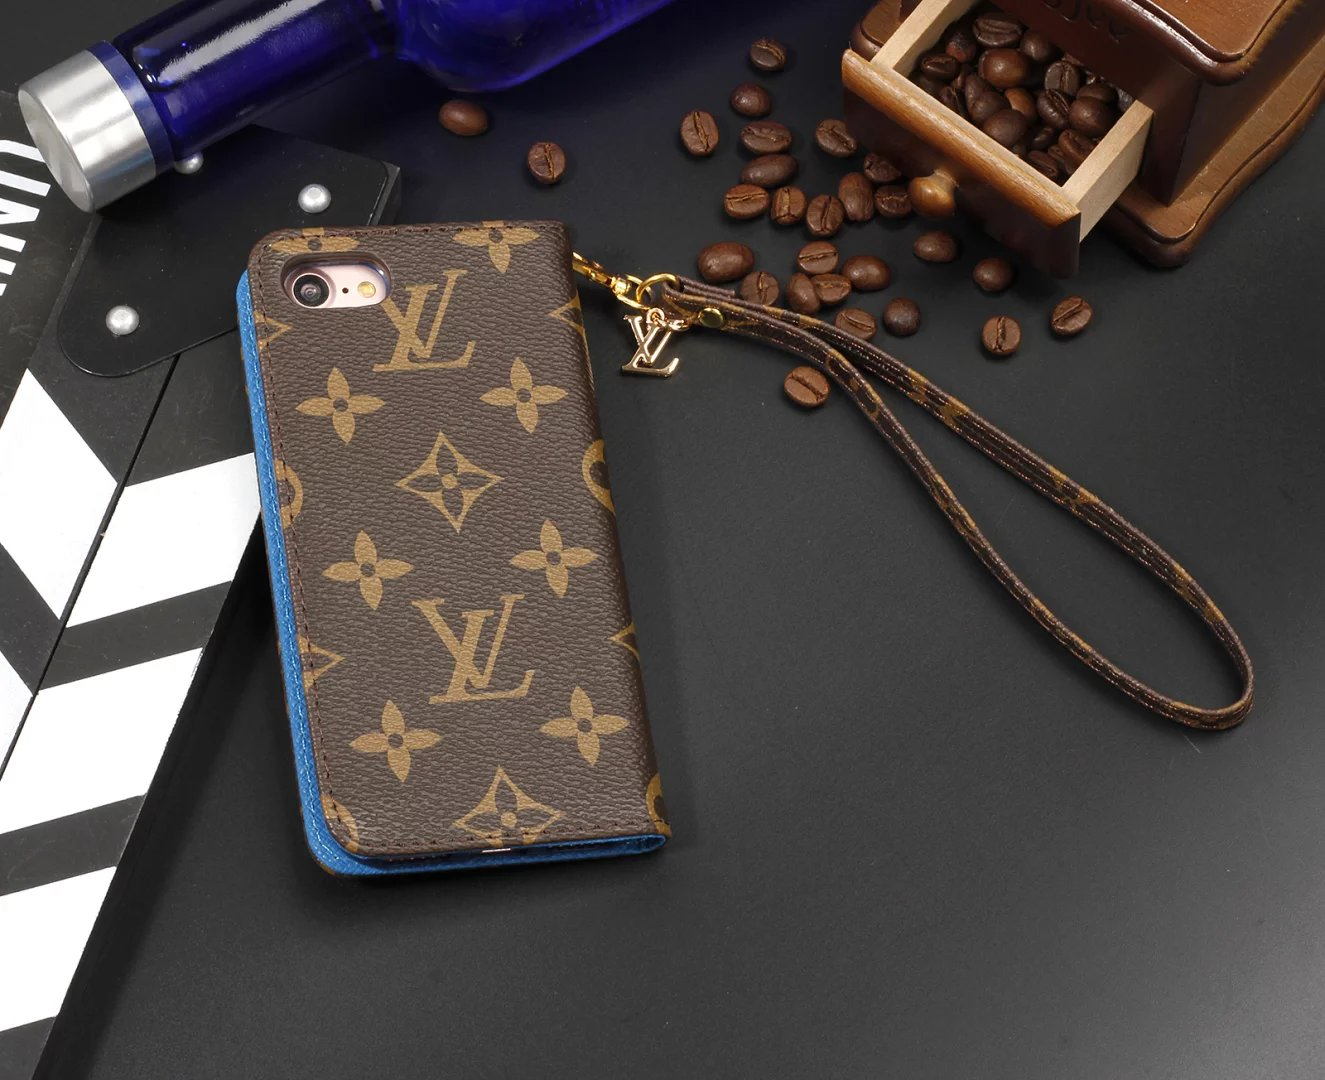 iphone silikonhülle designer iphone hüllen Louis Vuitton iphone6s plus hülle handyhülle mit akku iphone 6s Plus handyhülle eigenes foto iphone cover mit eigenem foto iphone 6 megapixel kamera wann kommt das neue iphone 6 handytasche leder iphone 6s Plus